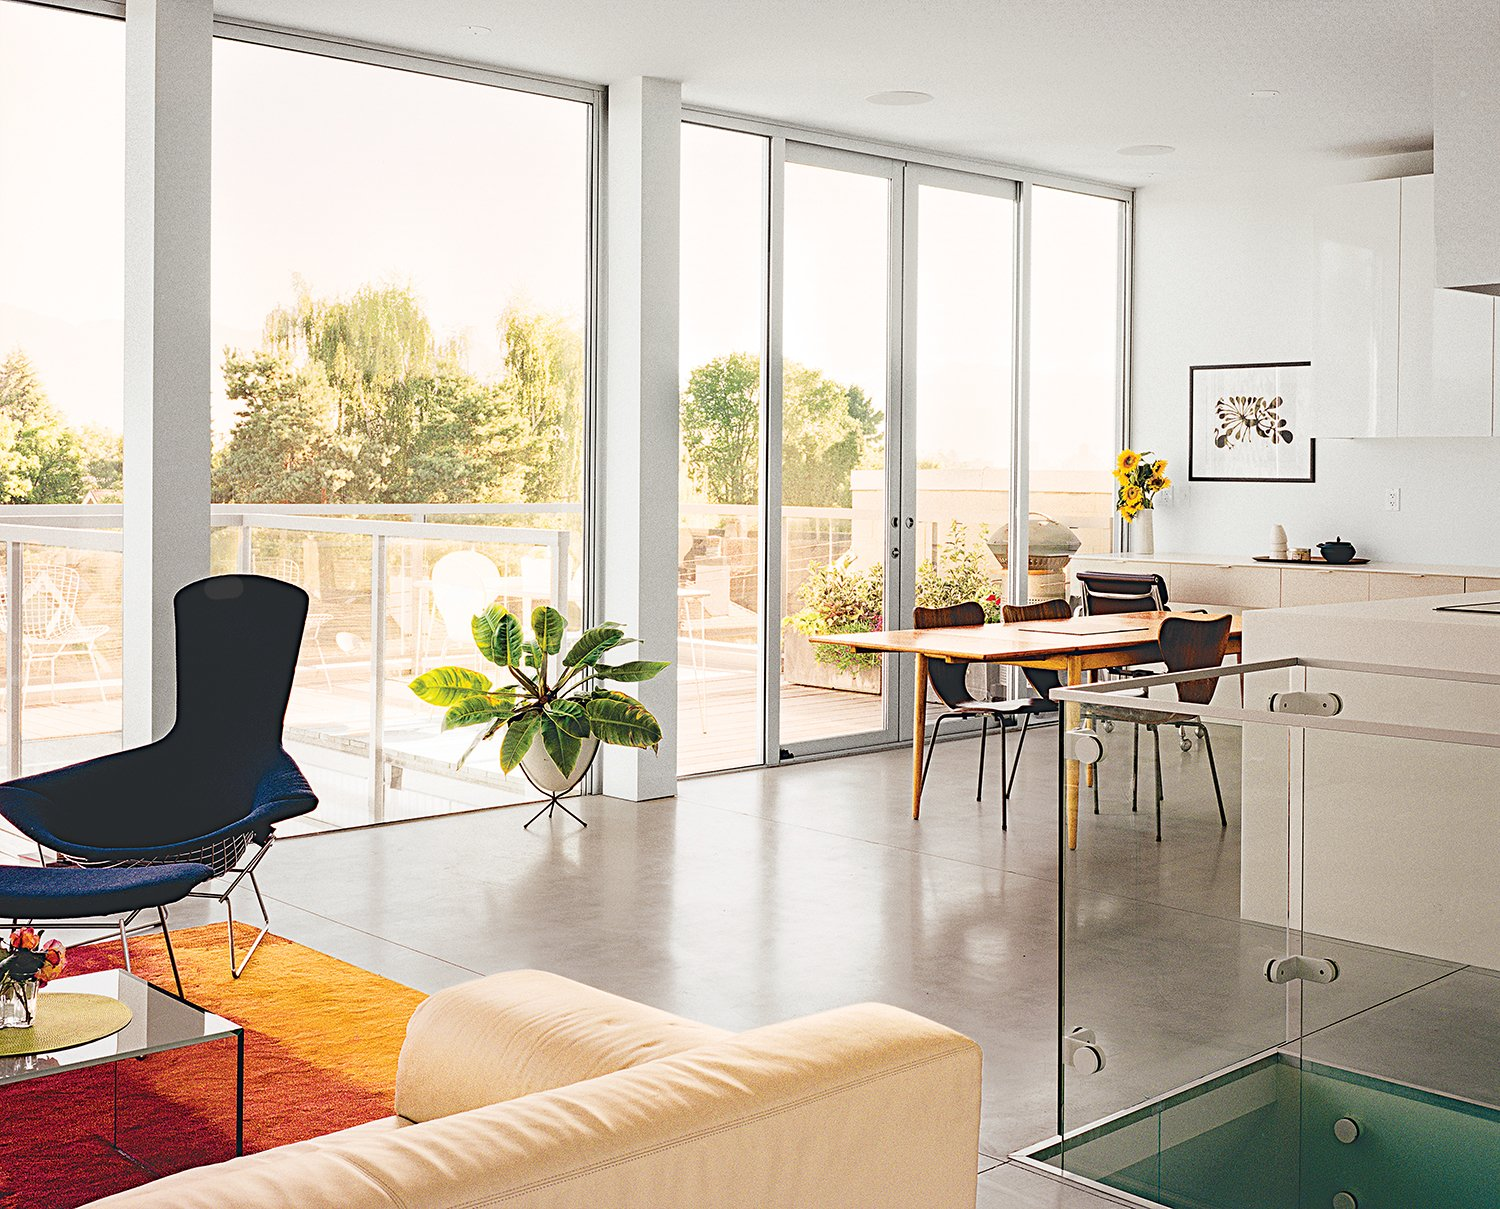 The living-dining area of their own residence is lined with doors and windows from Phoenix Glass for Columbia Aluminum Products. A Modern Multiunit Prefab Prototype in Vancouver - Photo 1 of 7